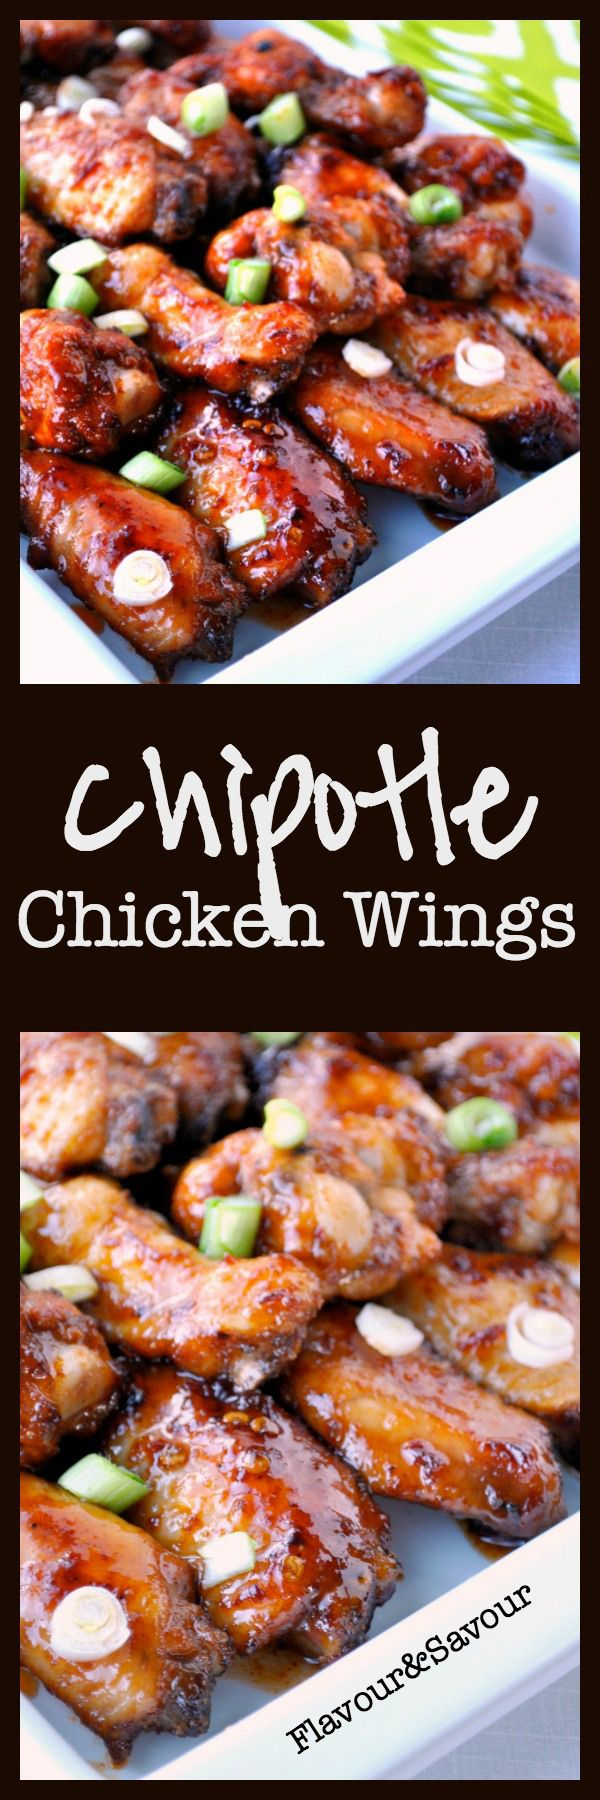 super spicy and just as good as the honig kalk blumenkohl hot wings ...